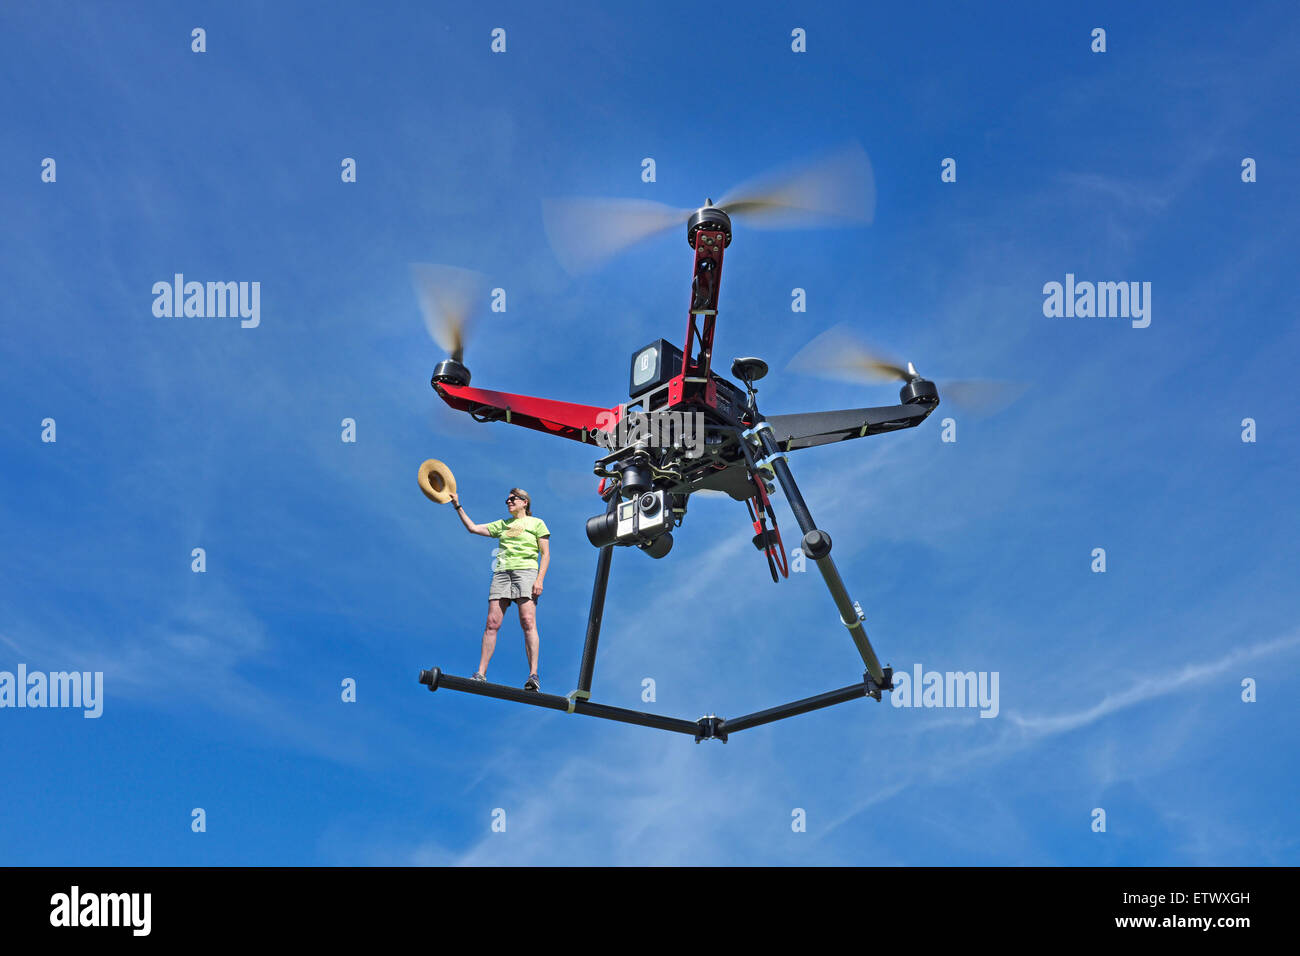 Same day delivery via a quadcopter drone, equipped with a gopro camera, in flight. - Stock Image